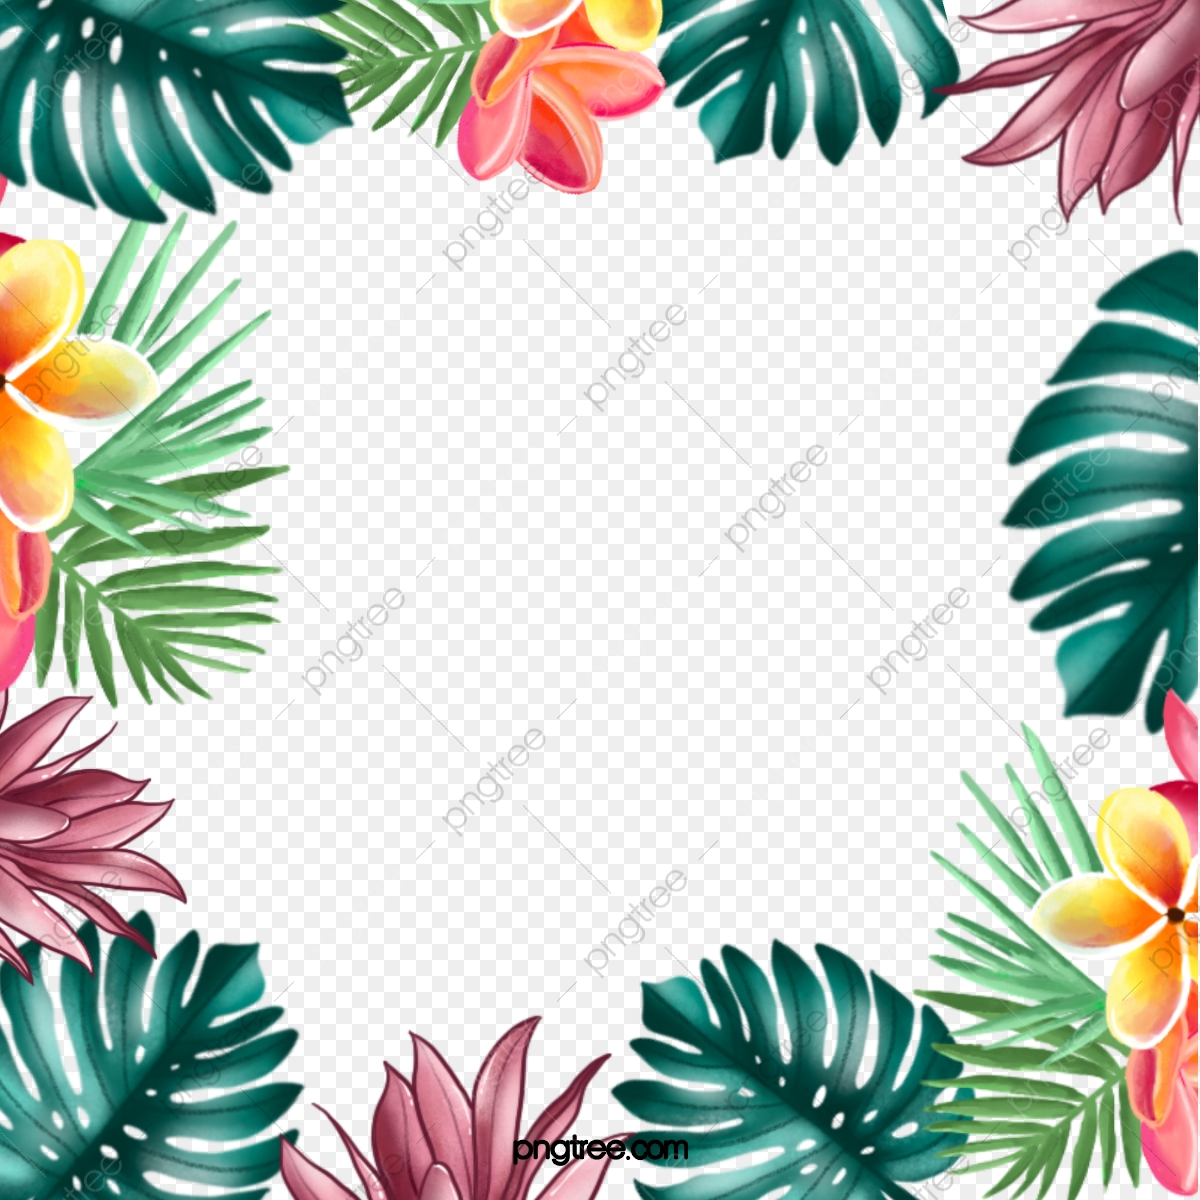 Hand Painted Tropical Leaves Border Leaf Flower Green Png Transparent Clipart Image And Psd File For Free Download Download the perfect tropical leaves pictures. https pngtree com freepng hand painted tropical leaves border 5361768 html